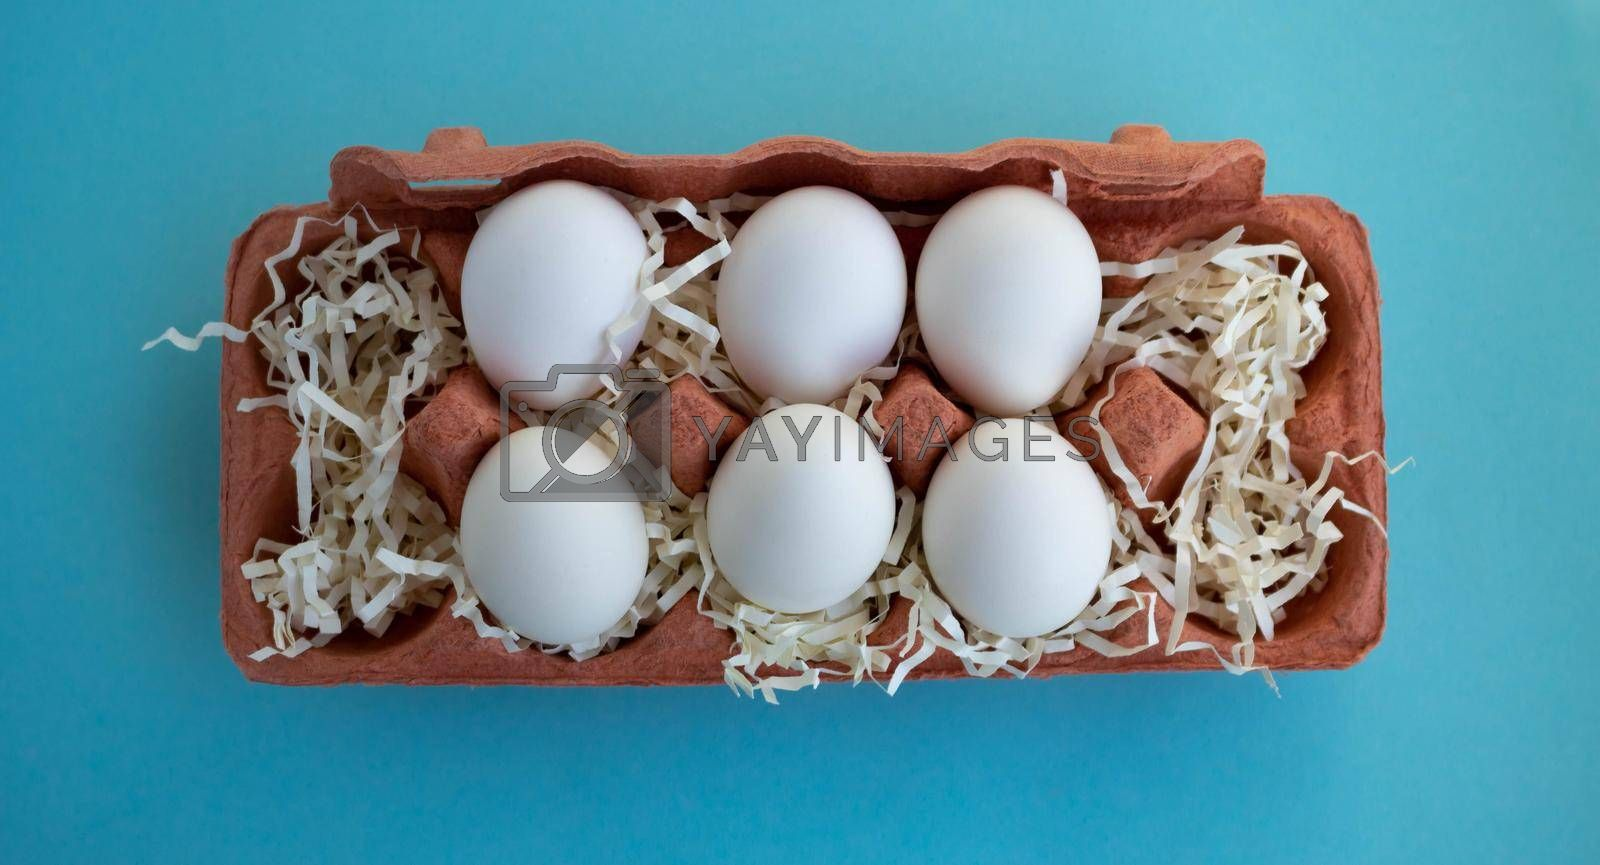 Six white fresh organic eggs in a beige eco-friendly cardboard egg container on a blue background. Easter concept, ecology, zero waste.